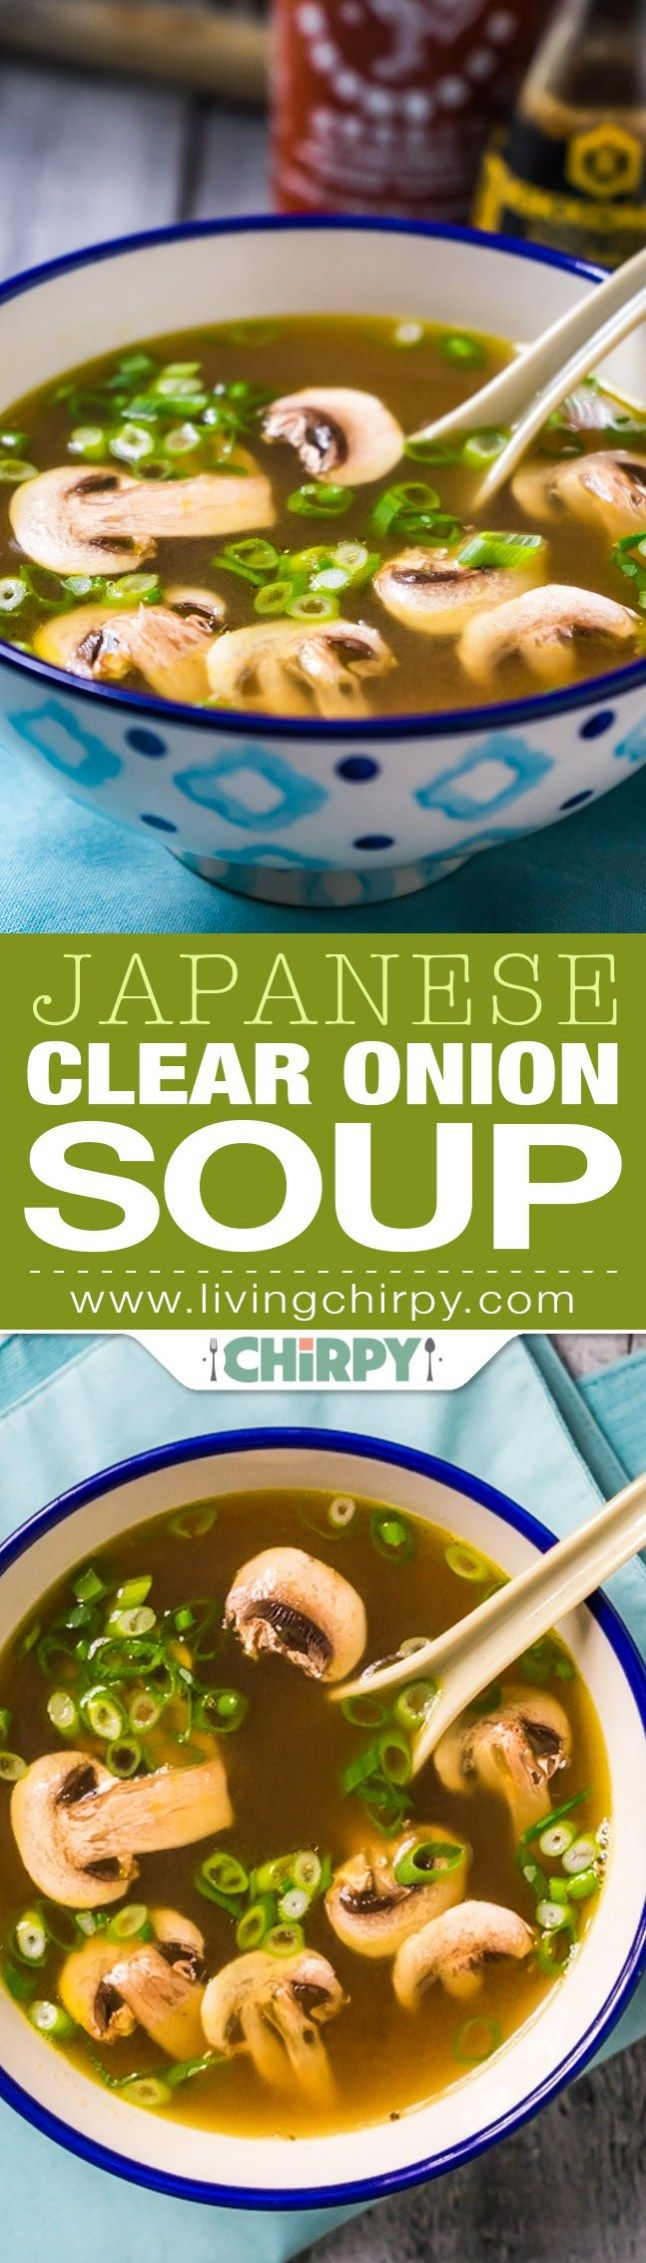 The Perfect Japanese Clear Onion Soup Recipe   Living Chirpy - The BEST Homemade Soups Recipes - Easy, Quick and Yummy Lunch and Dinner Family Favorites Meals Ideas